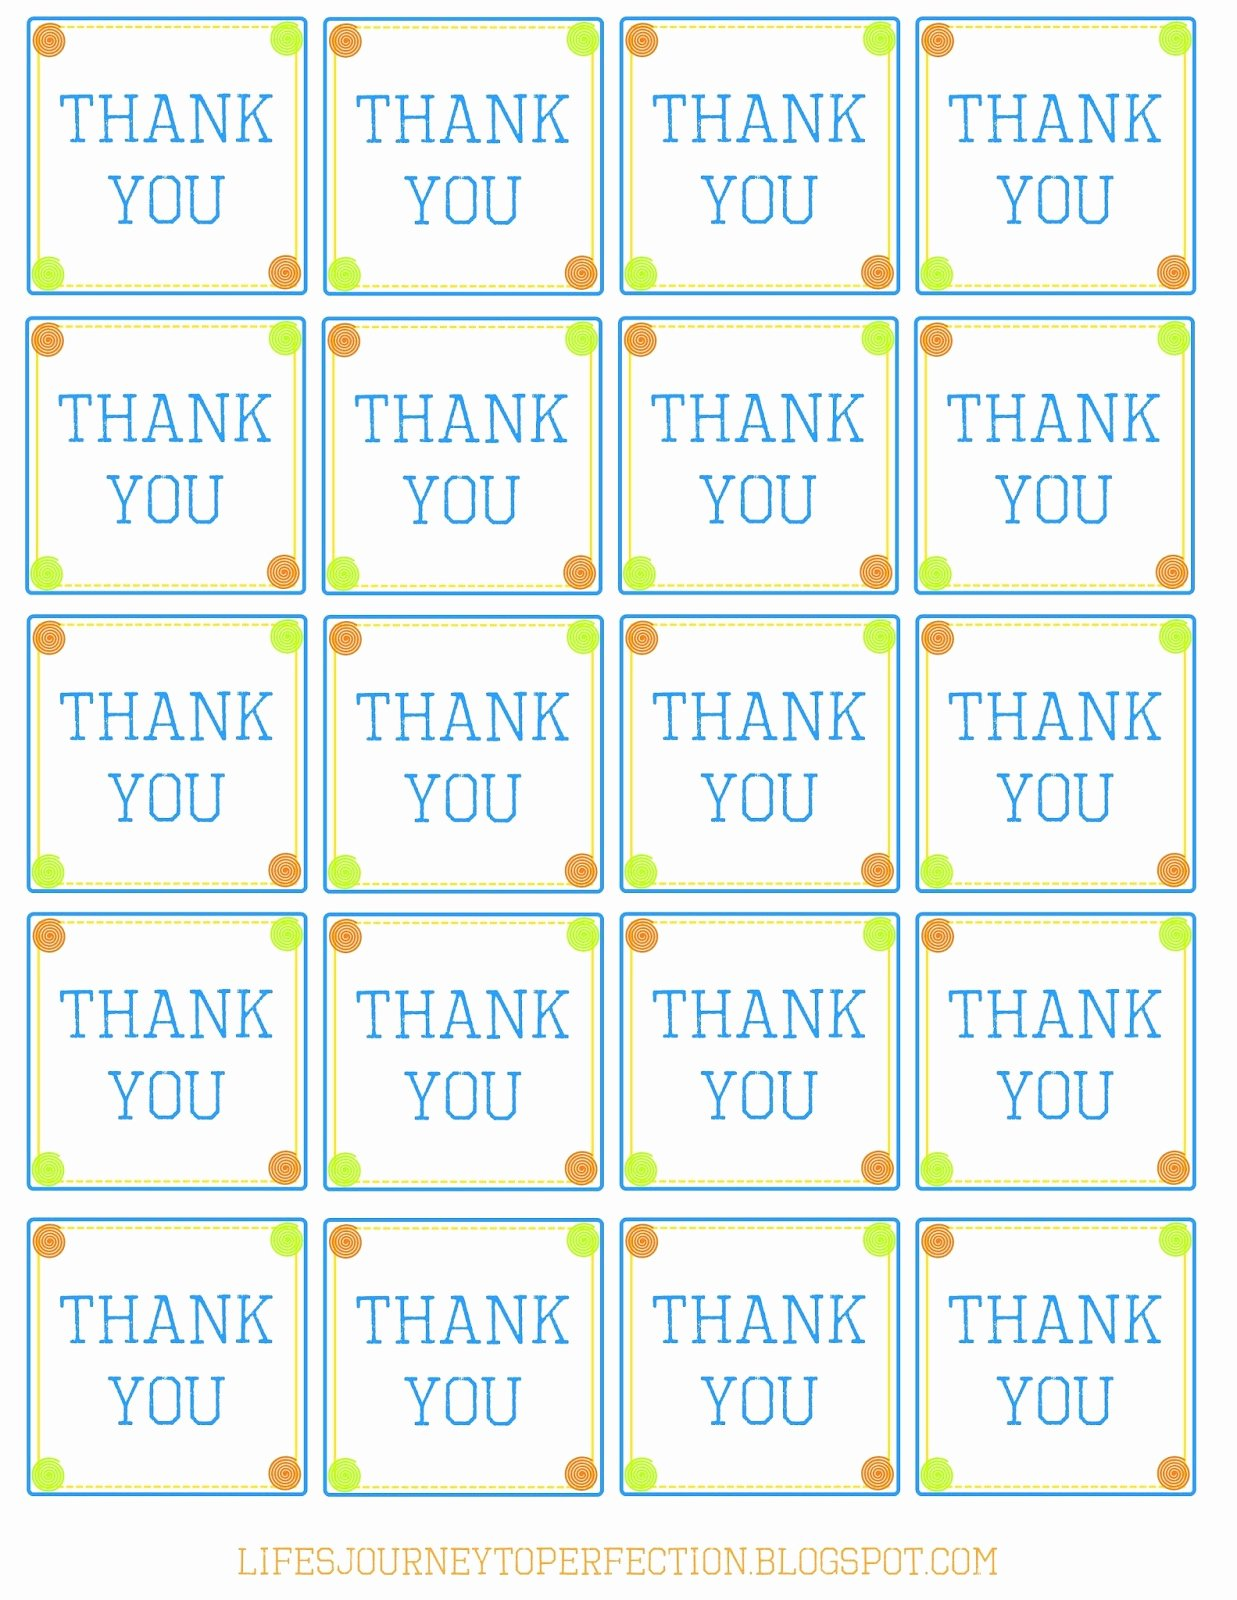 Free Printable Thank You Tags New Life S Journey to Perfection Thank You Baskets with Free